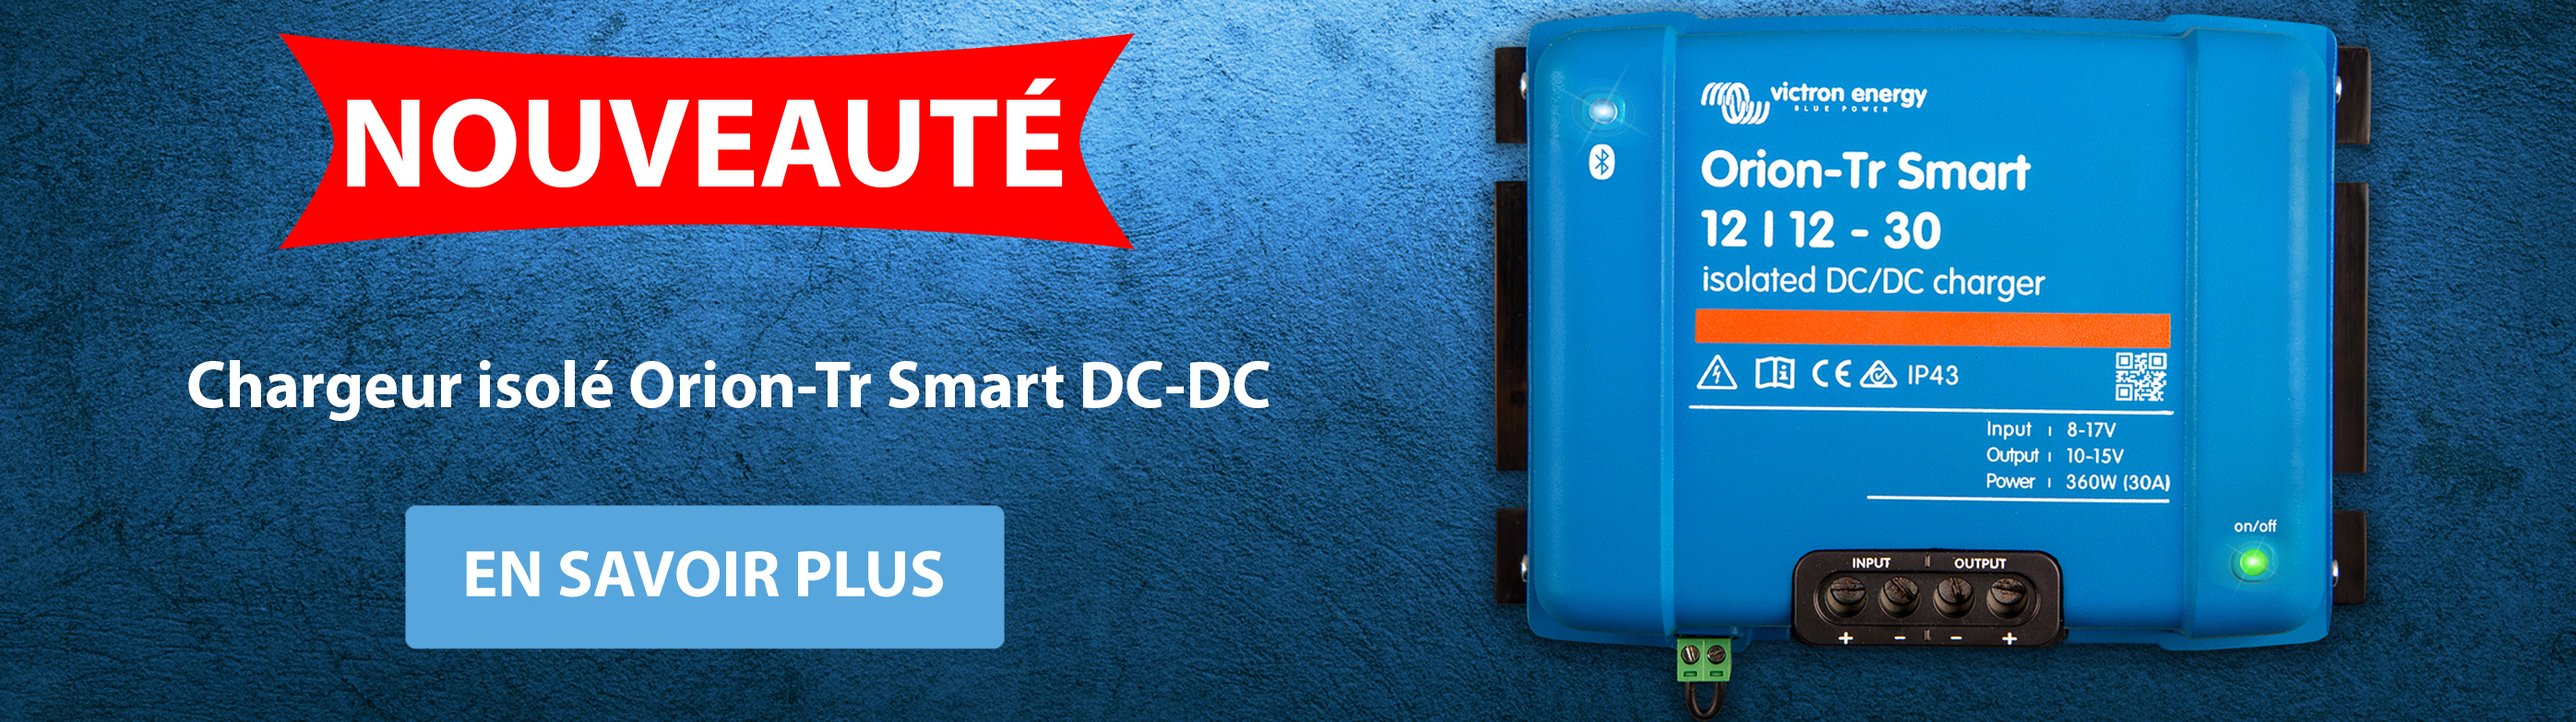 Chargeur Orion Tr Smart DC-DC